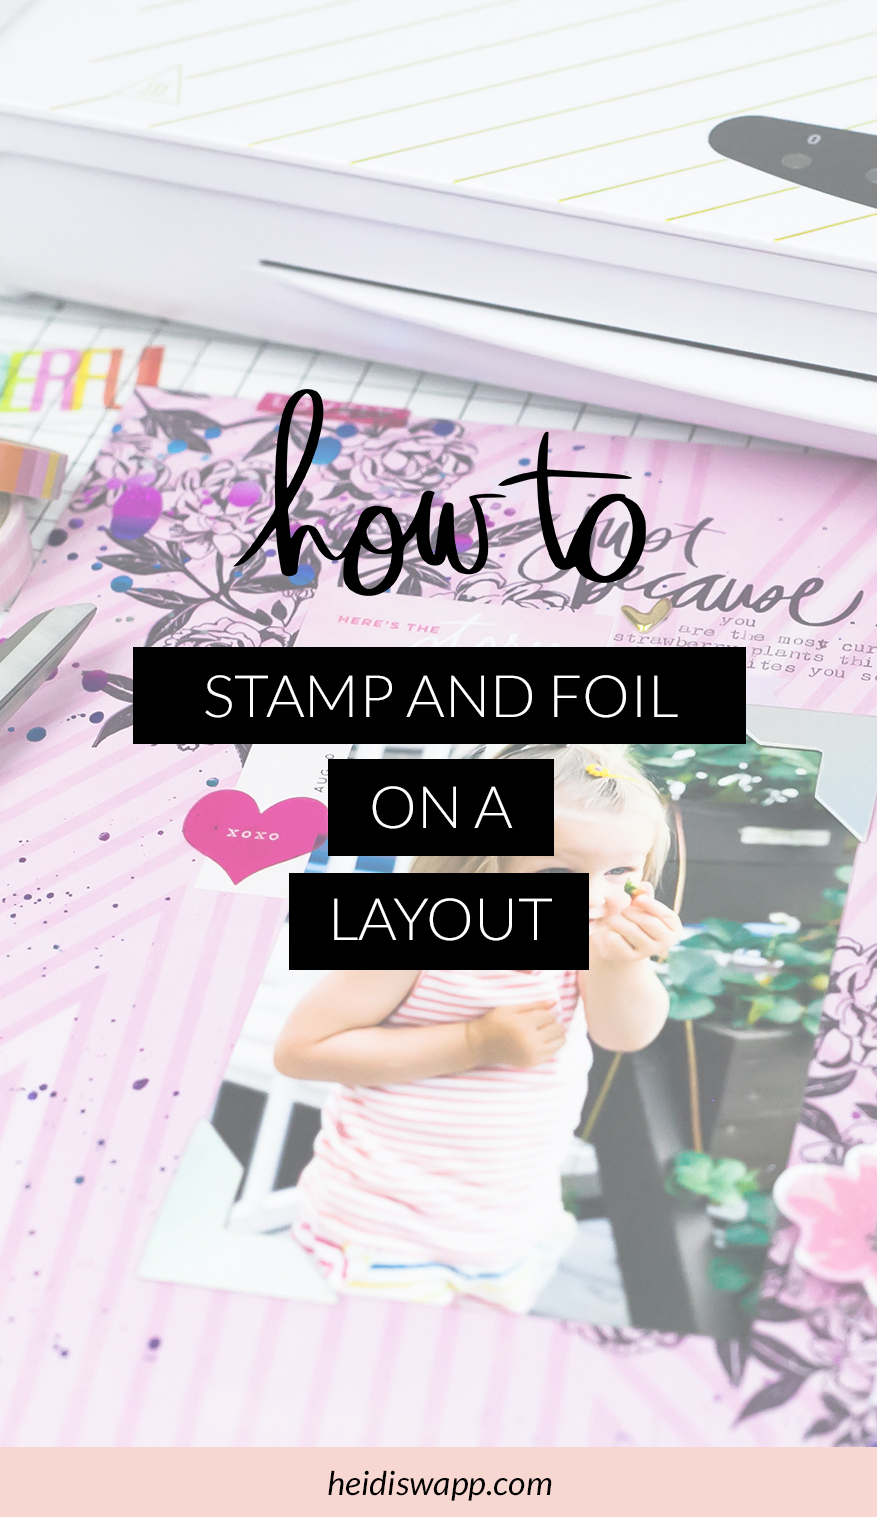 How to Stamp and Foil on a Scrapbook Page. Learn how to diy a beautiful layered stamping and foiled look using the @heidiswapp MINC Foil Applicator Machine #crafts #diy